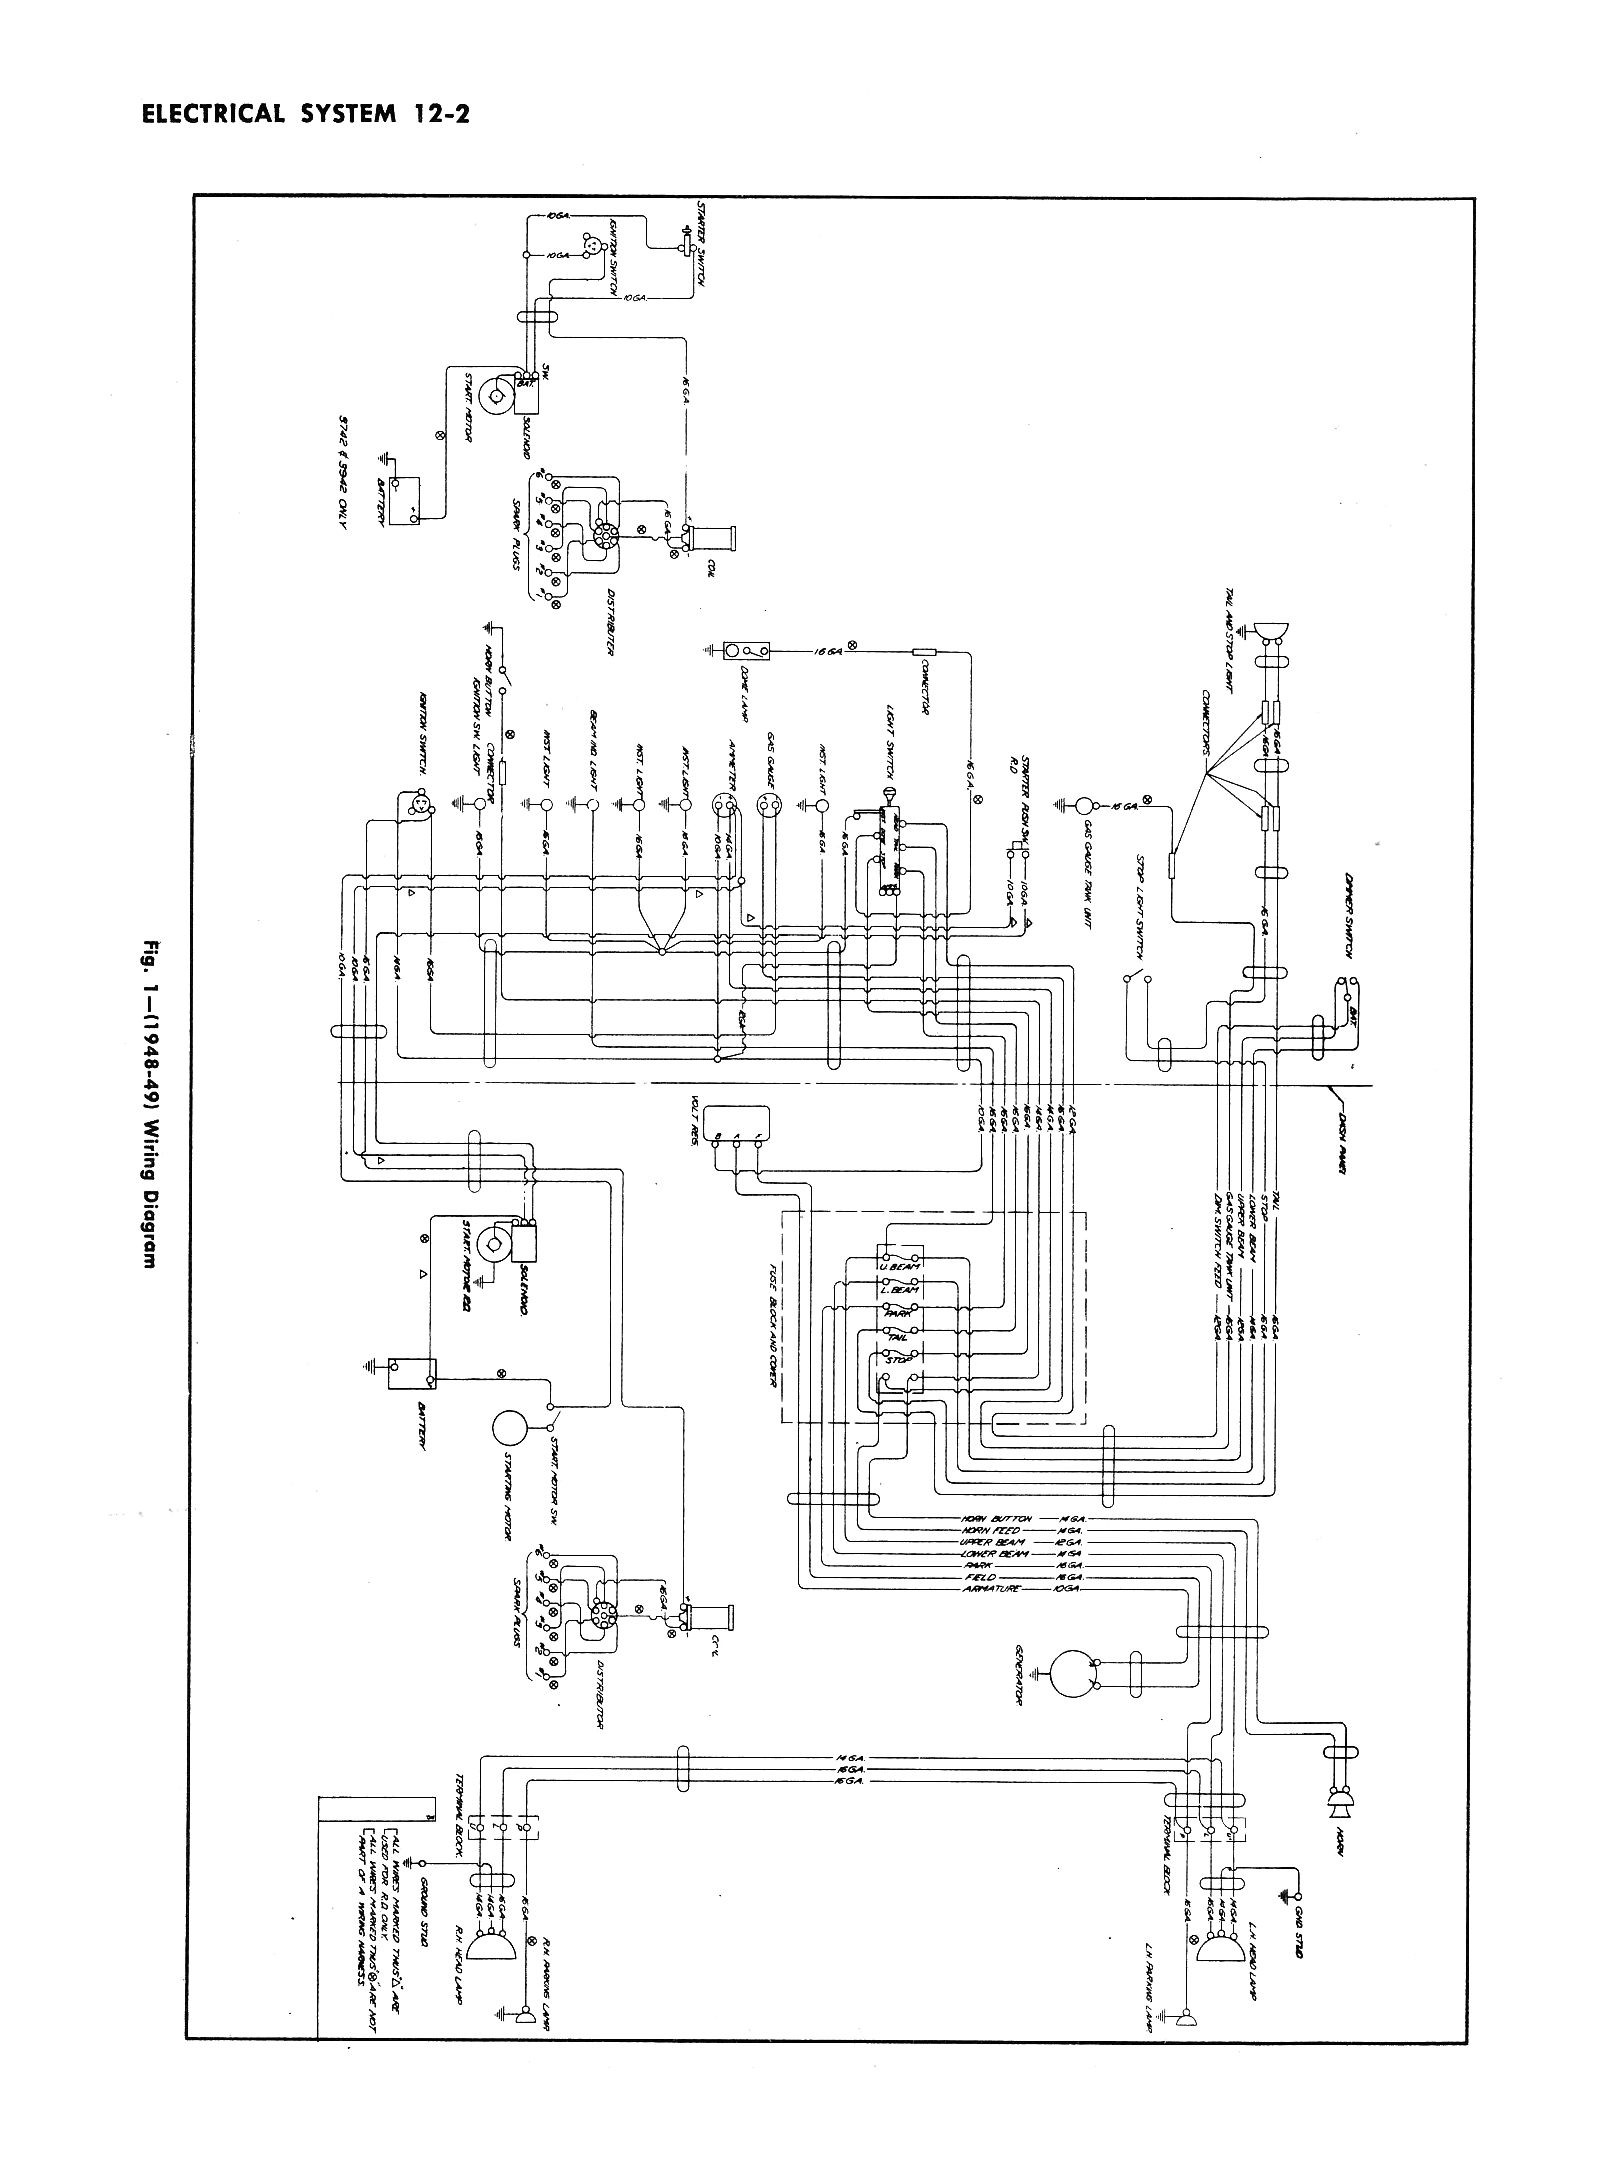 1948 Chevy Truck Wiring Diagram The Portal And Forum Of For A 1985 Pickup Diagrams Rh Oldcarmanualproject Com 1975